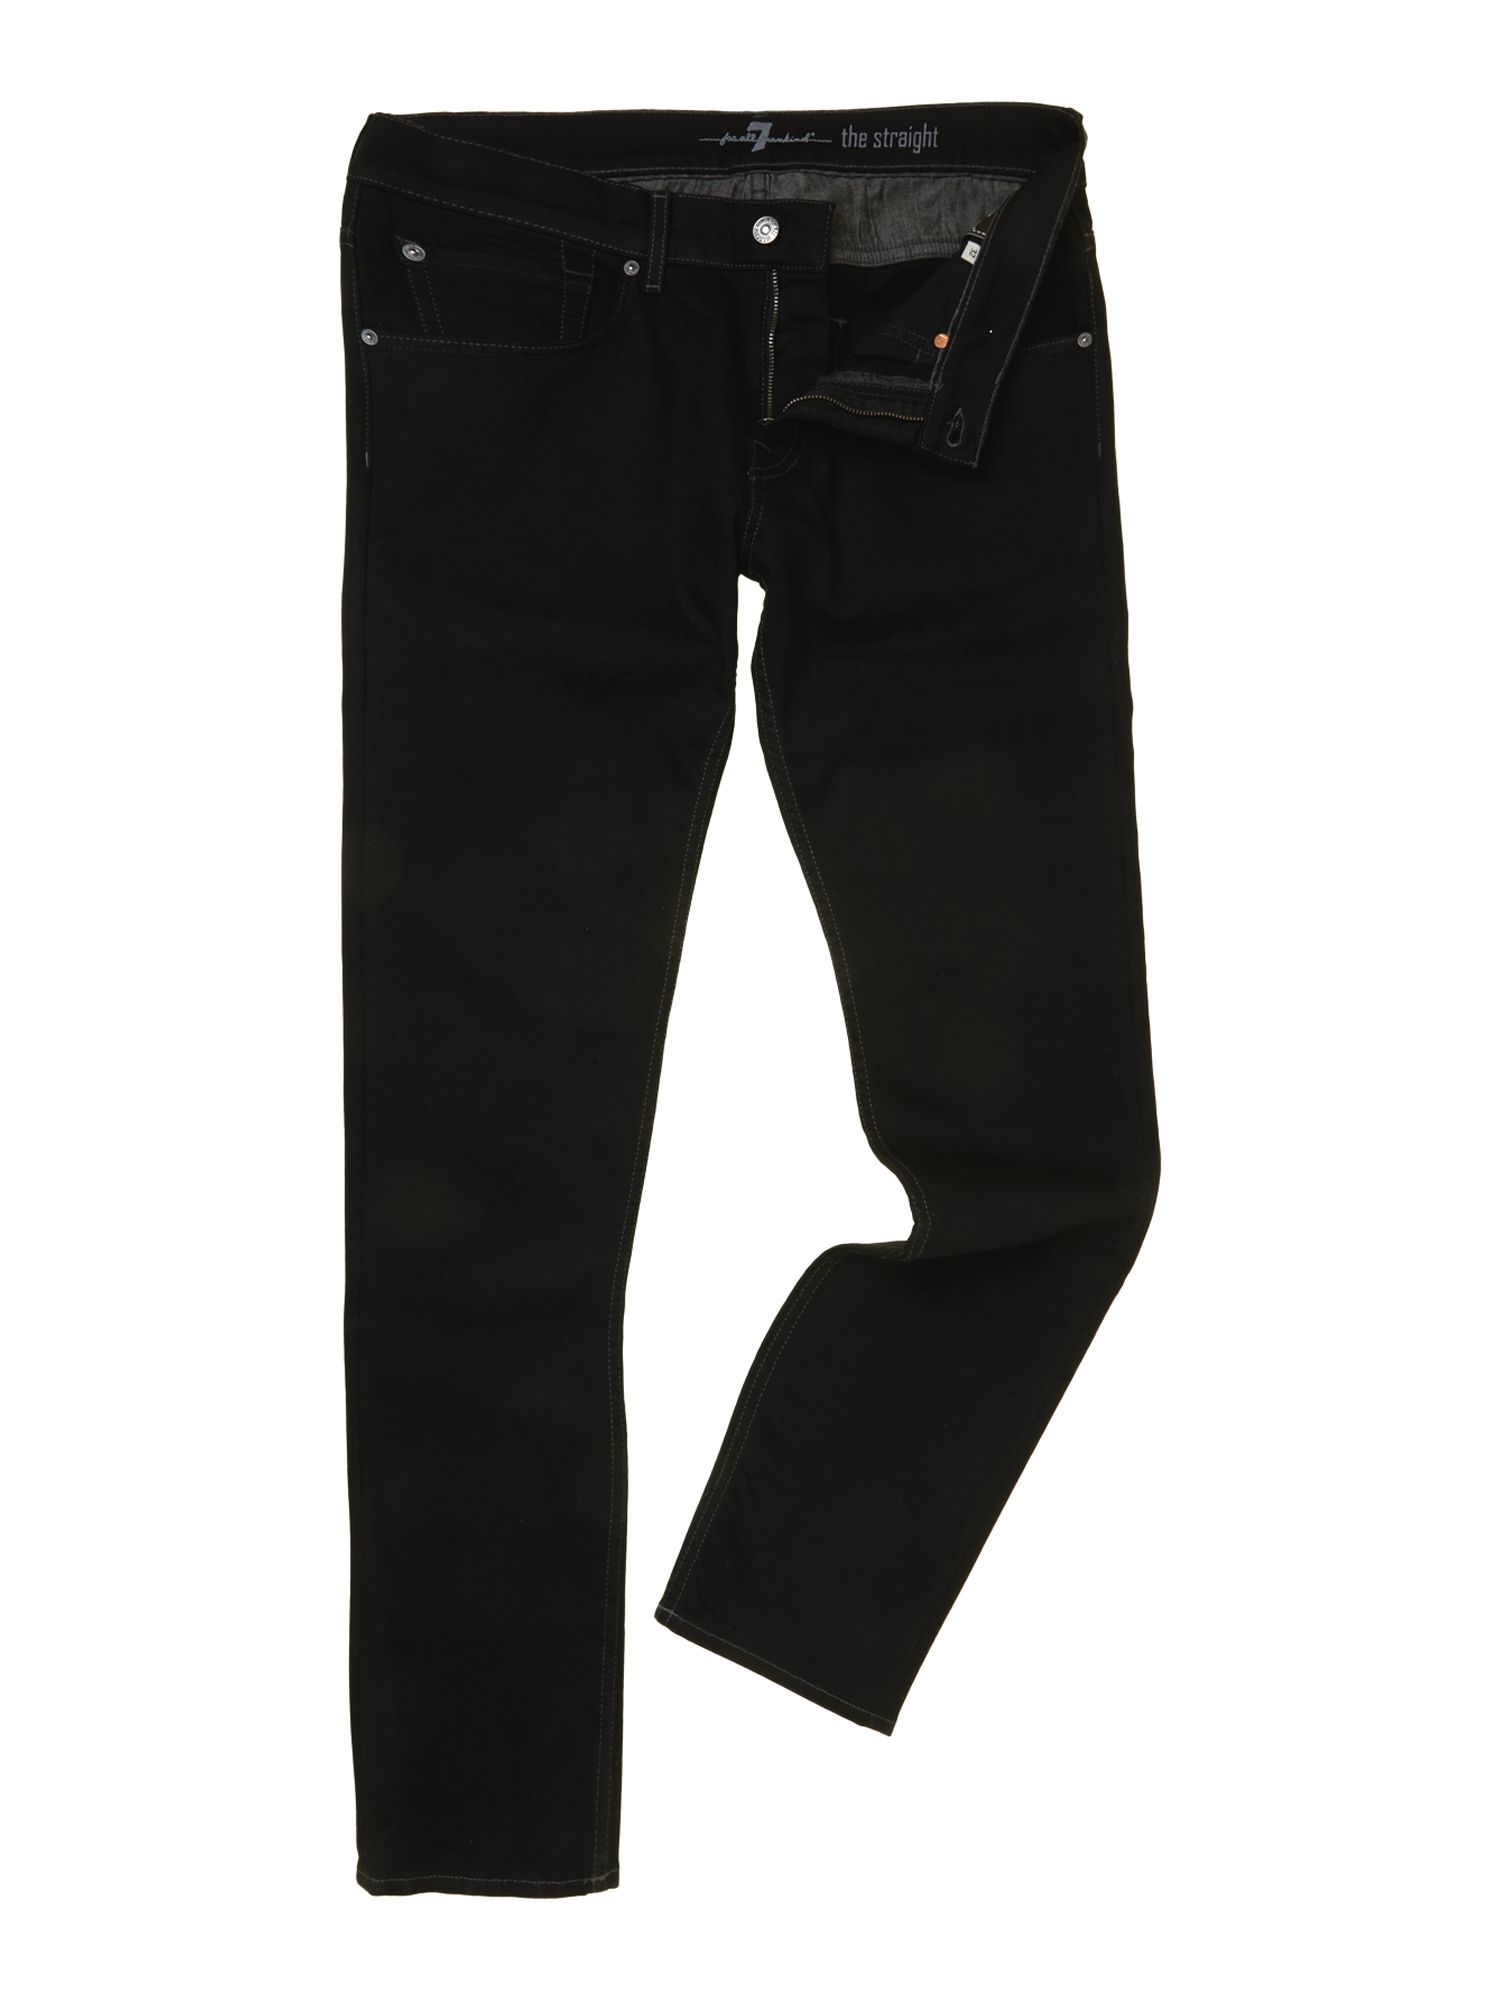 Straight no fade black wash jean